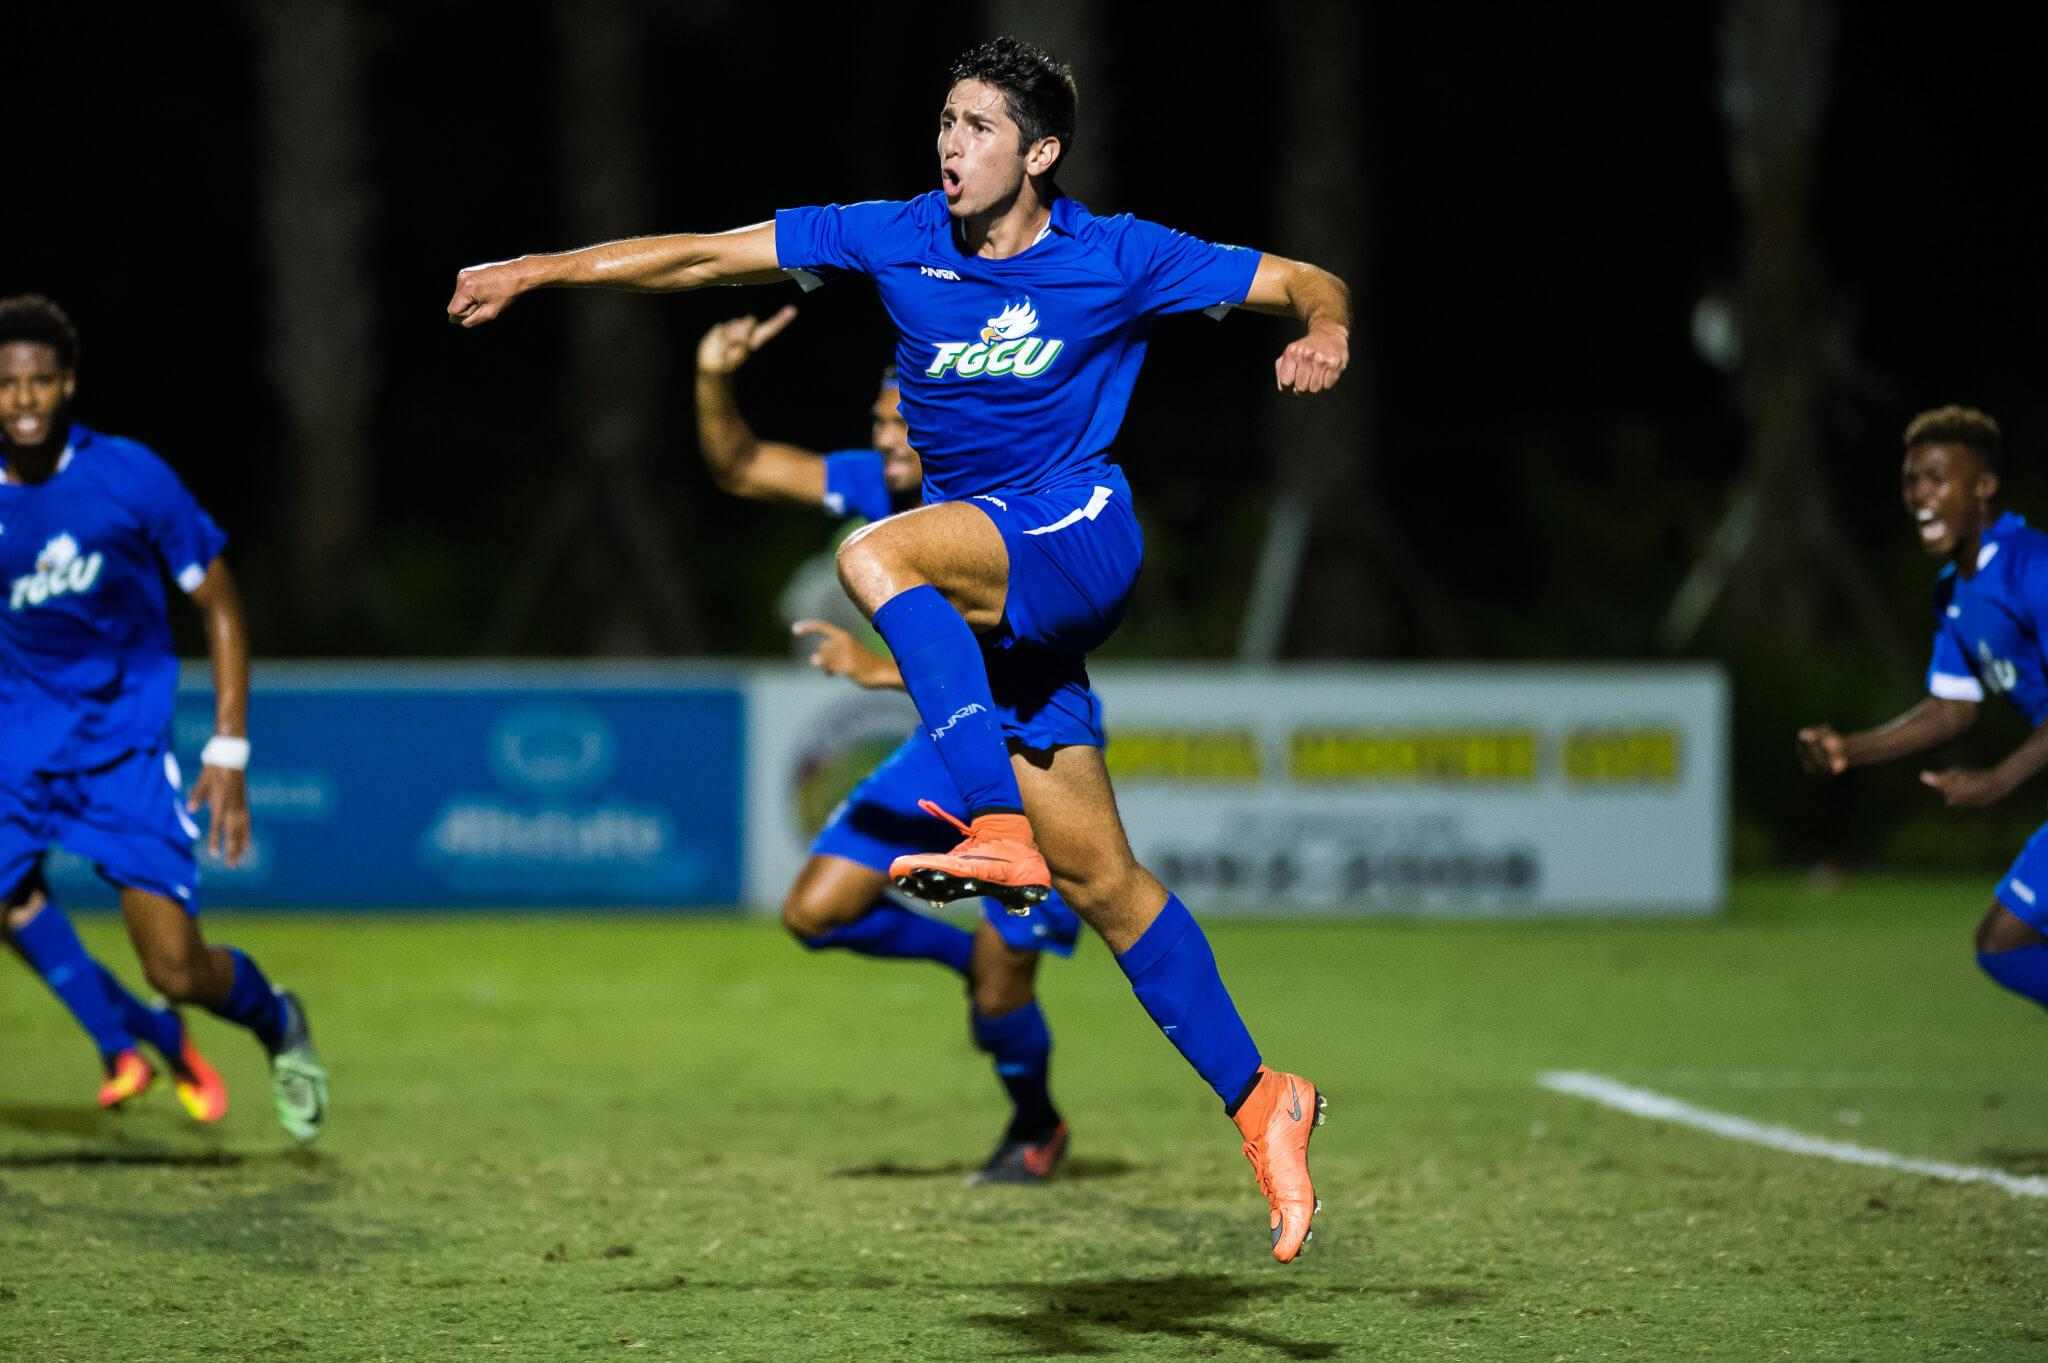 FGCU drops heartbreaking 4-3 loss in double overtime to #14 FIU